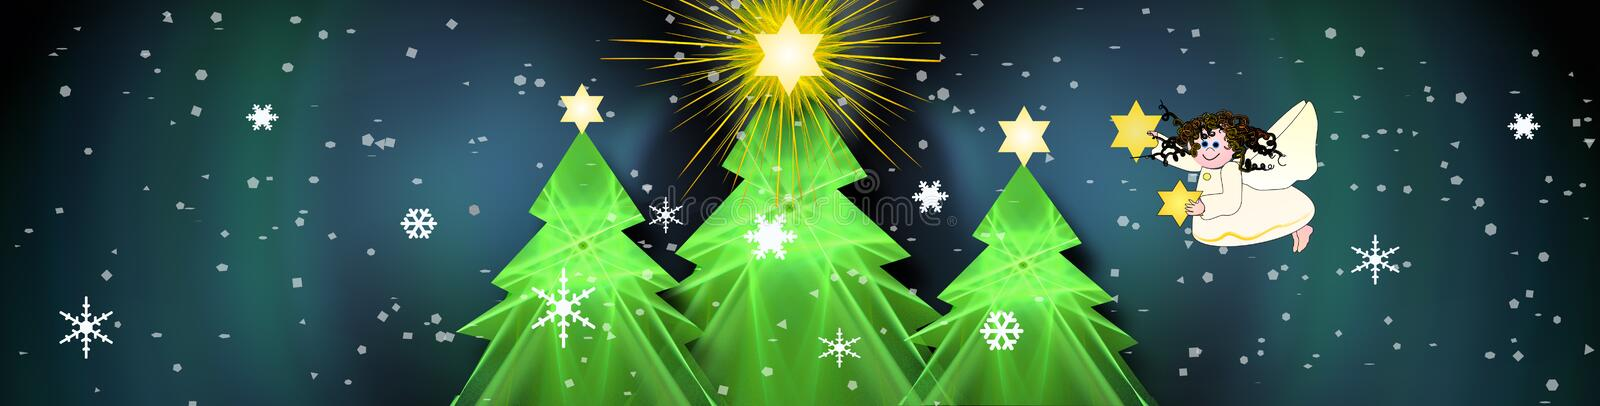 Christmas Banner With Bright Stars. Decorative digital christmas design with snow stars and a cute angel royalty free illustration